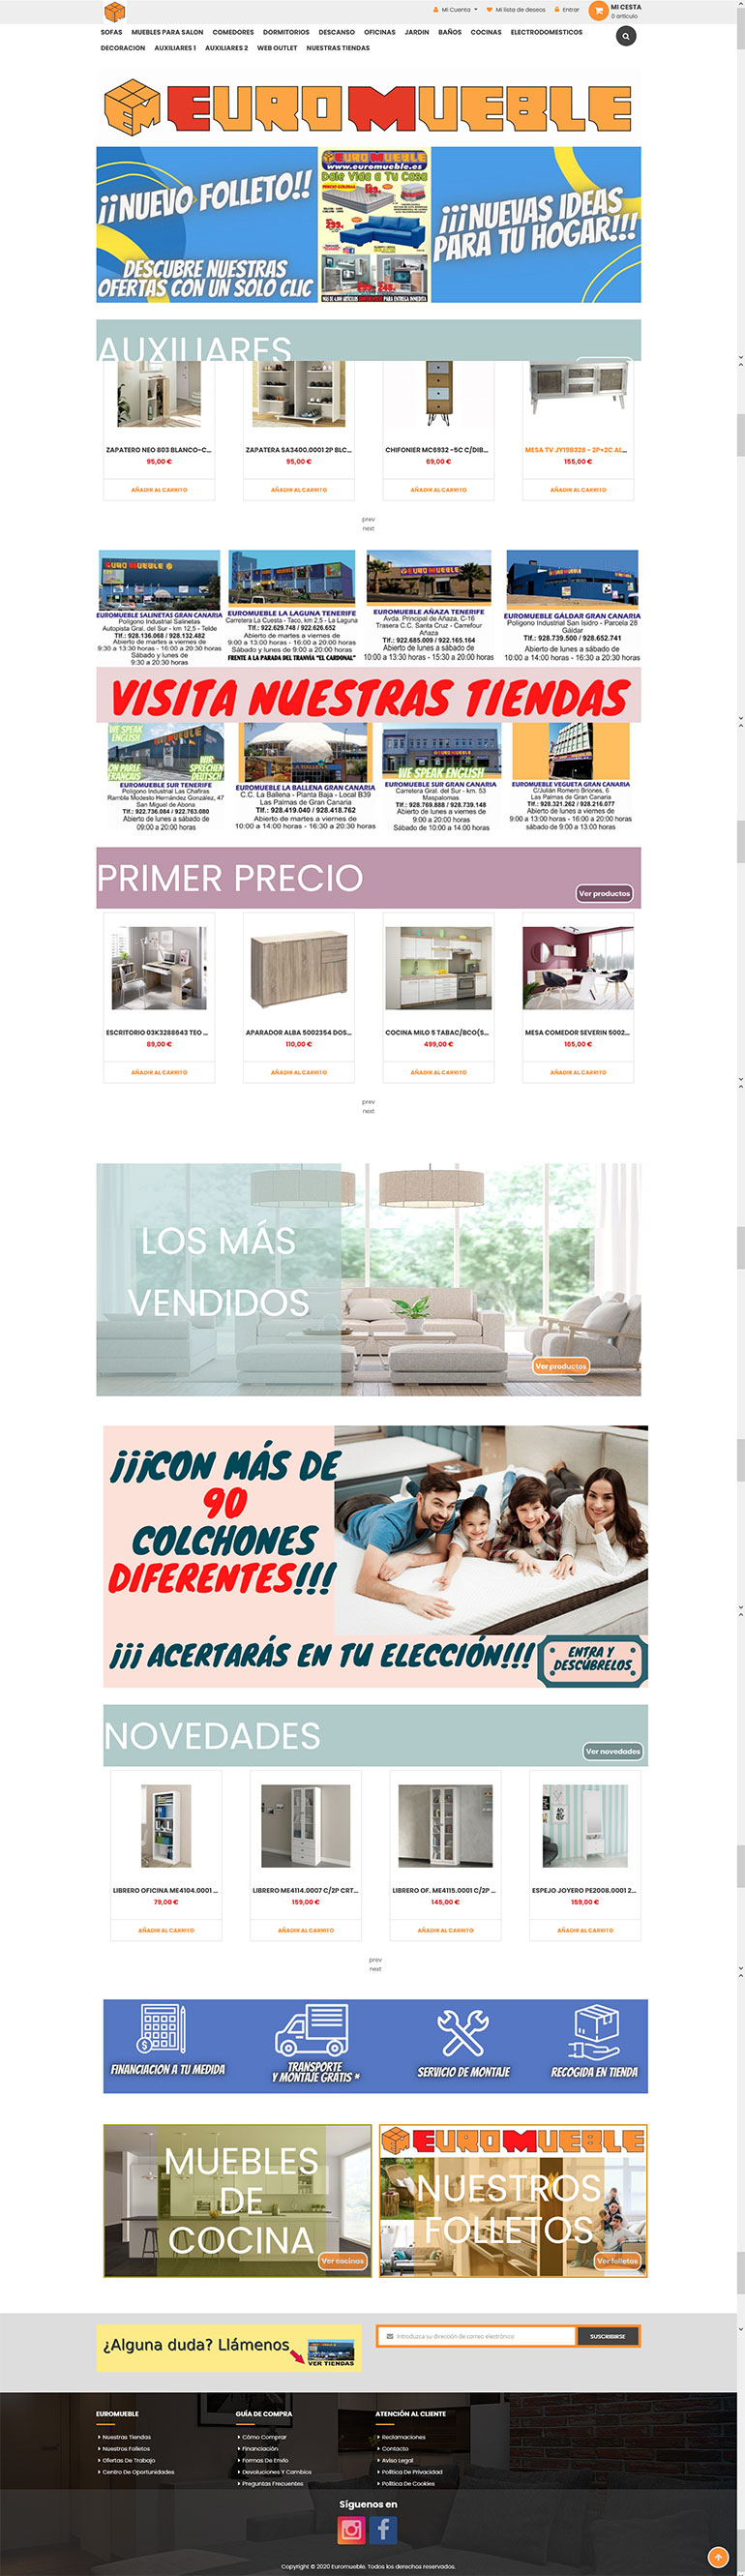 home page of magento 2